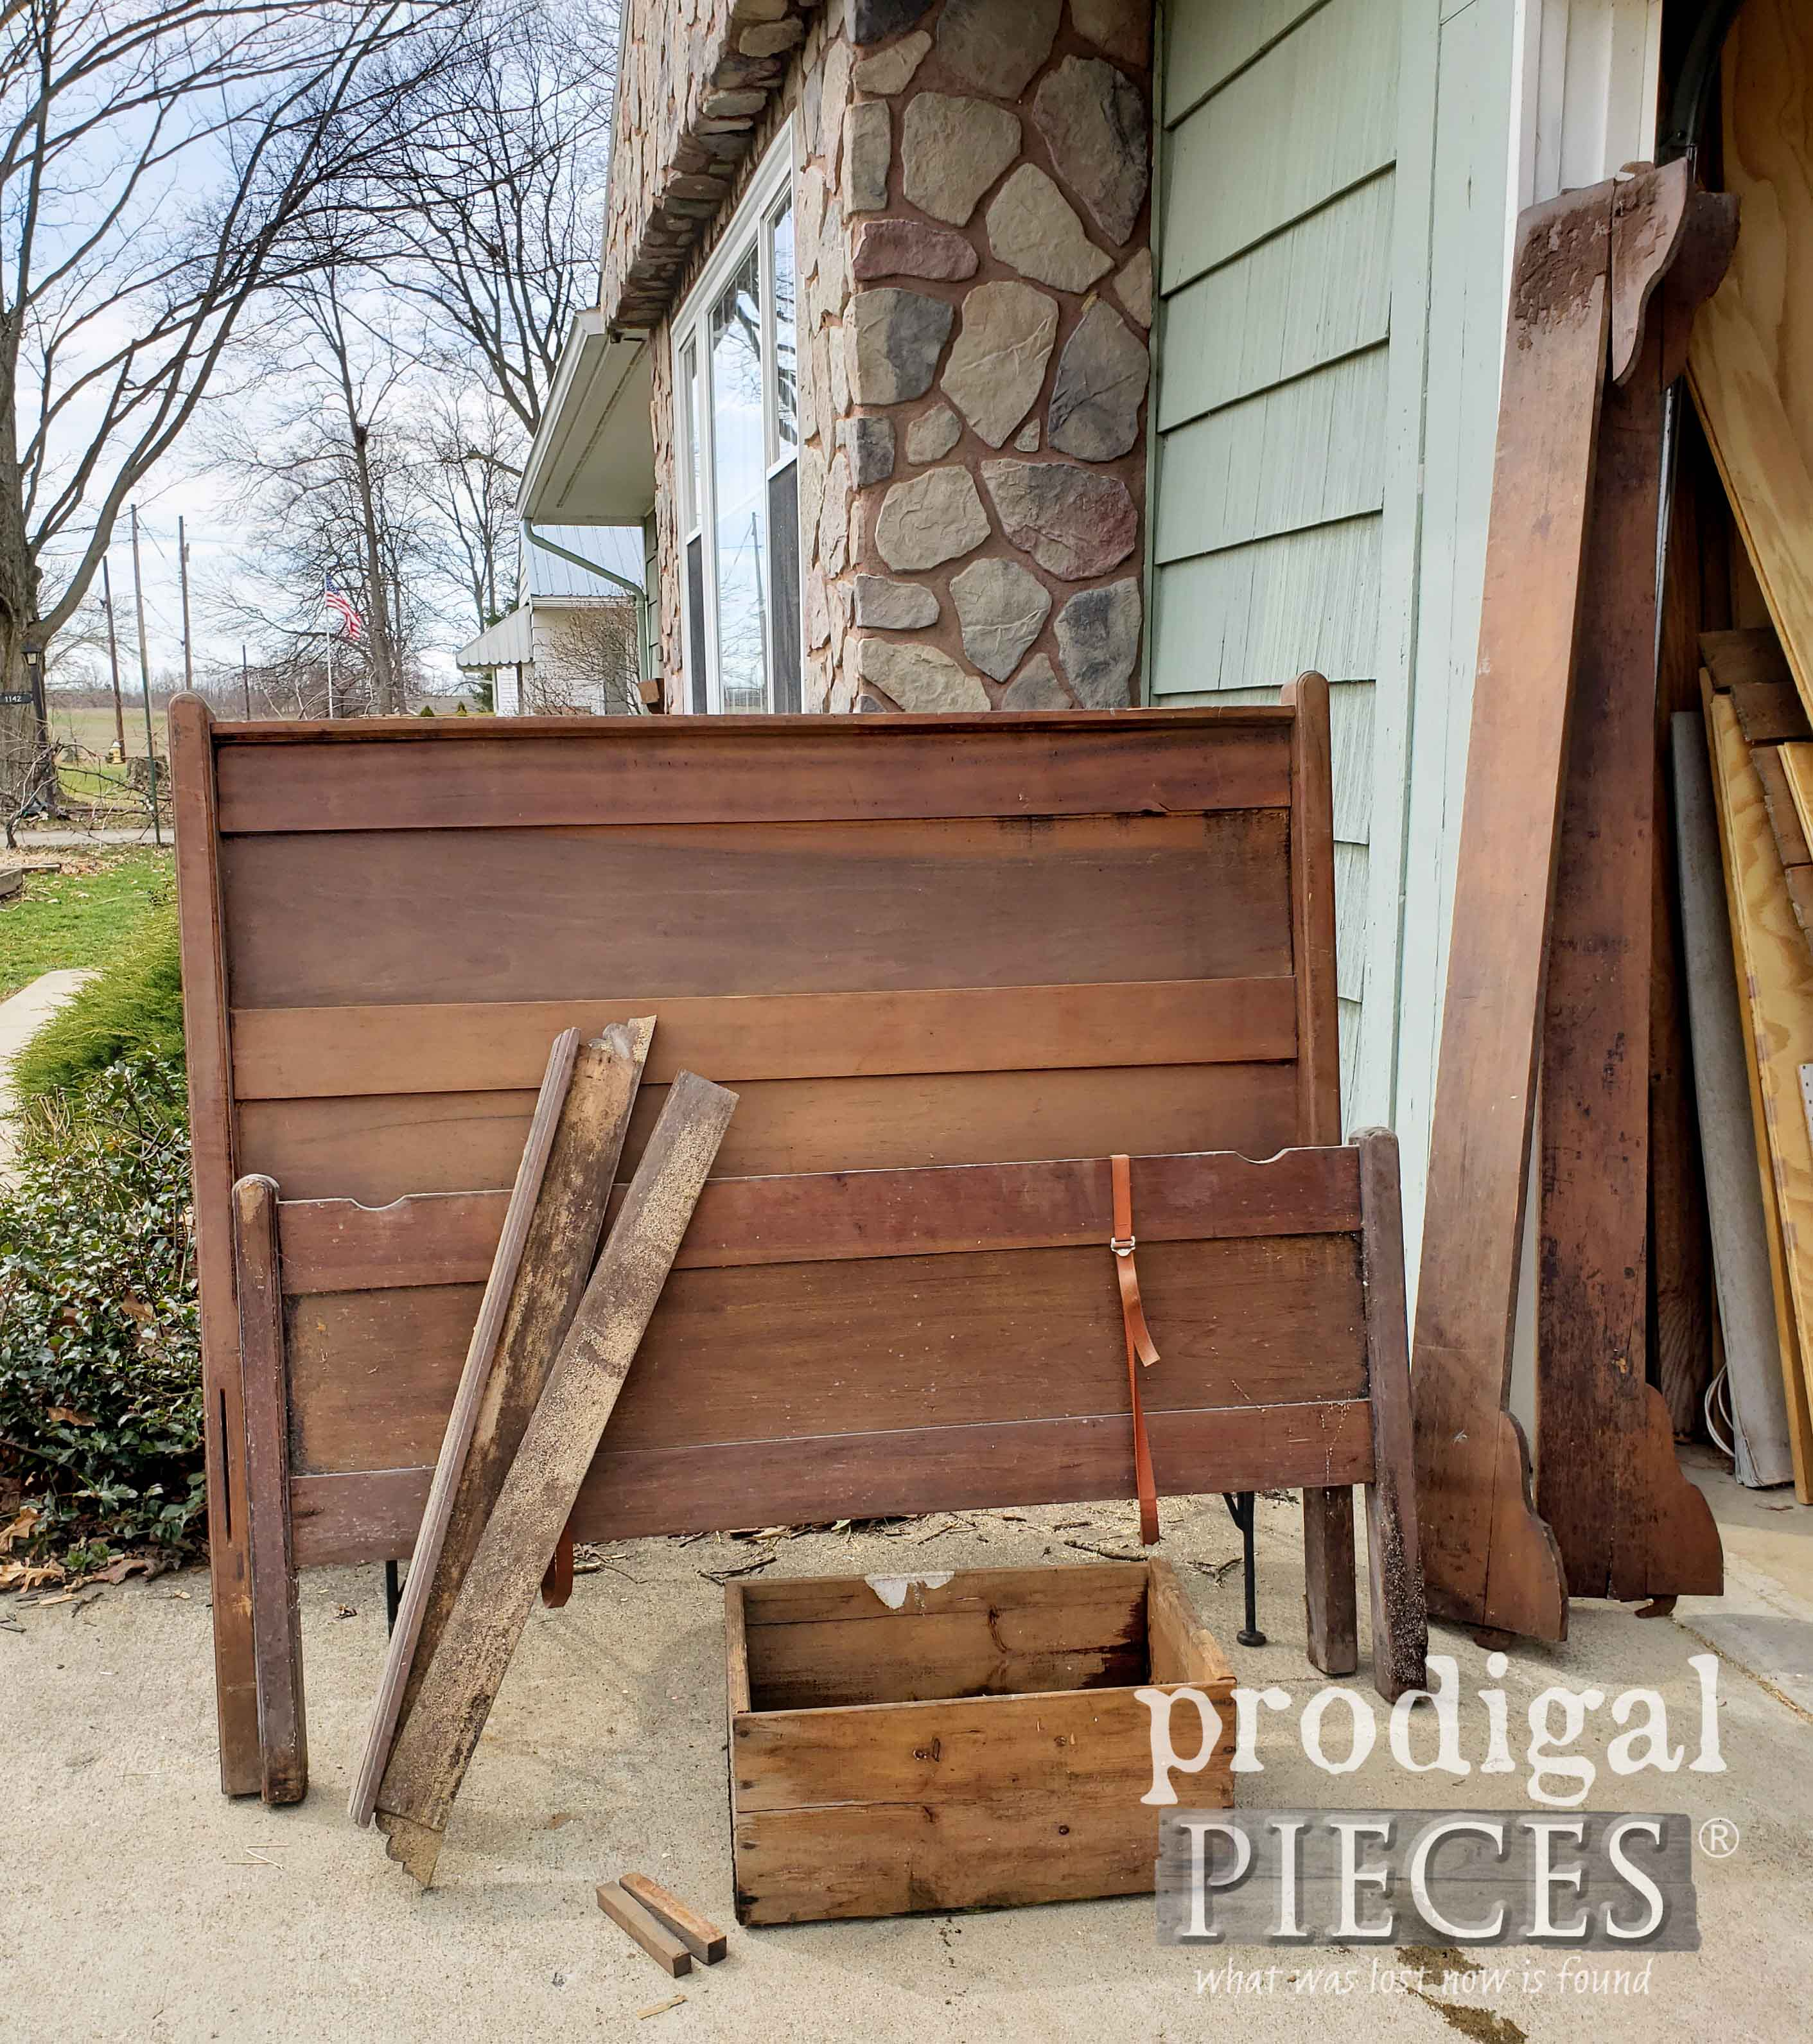 Antique Full Size Bed found Curbside (aka. #Trashure) by Larissa of Prodigal Pieces | prodigalpieces.com #prodigalpieces